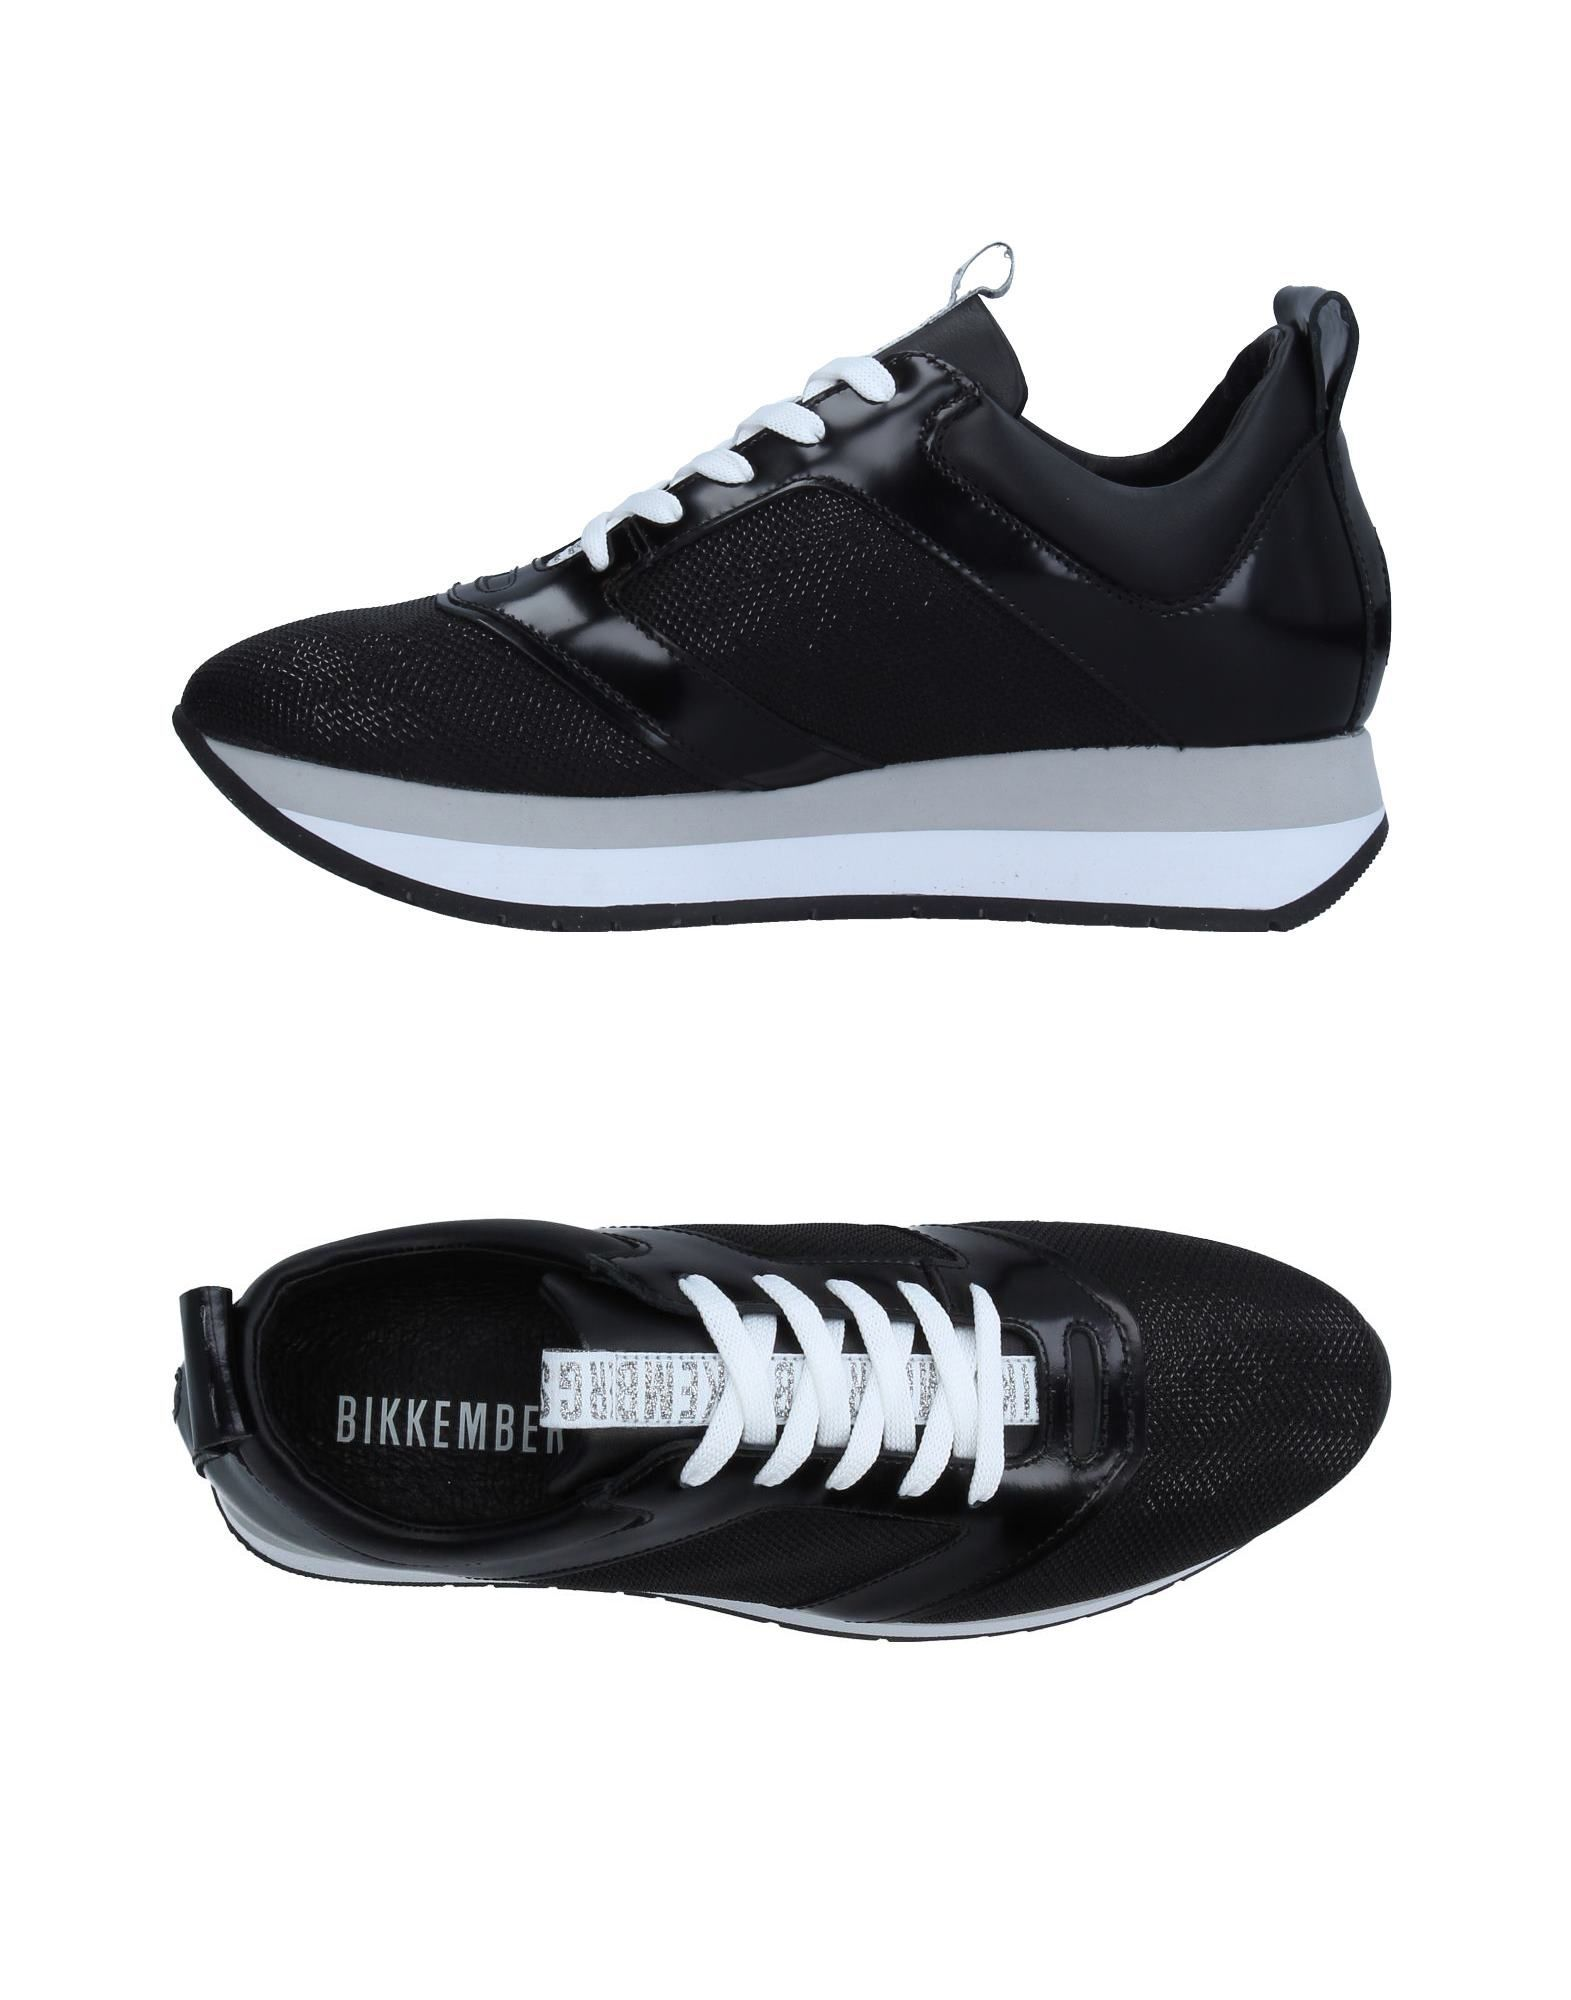 A buon mercato Sneakers Bikkembergs Donna - 11326197VN